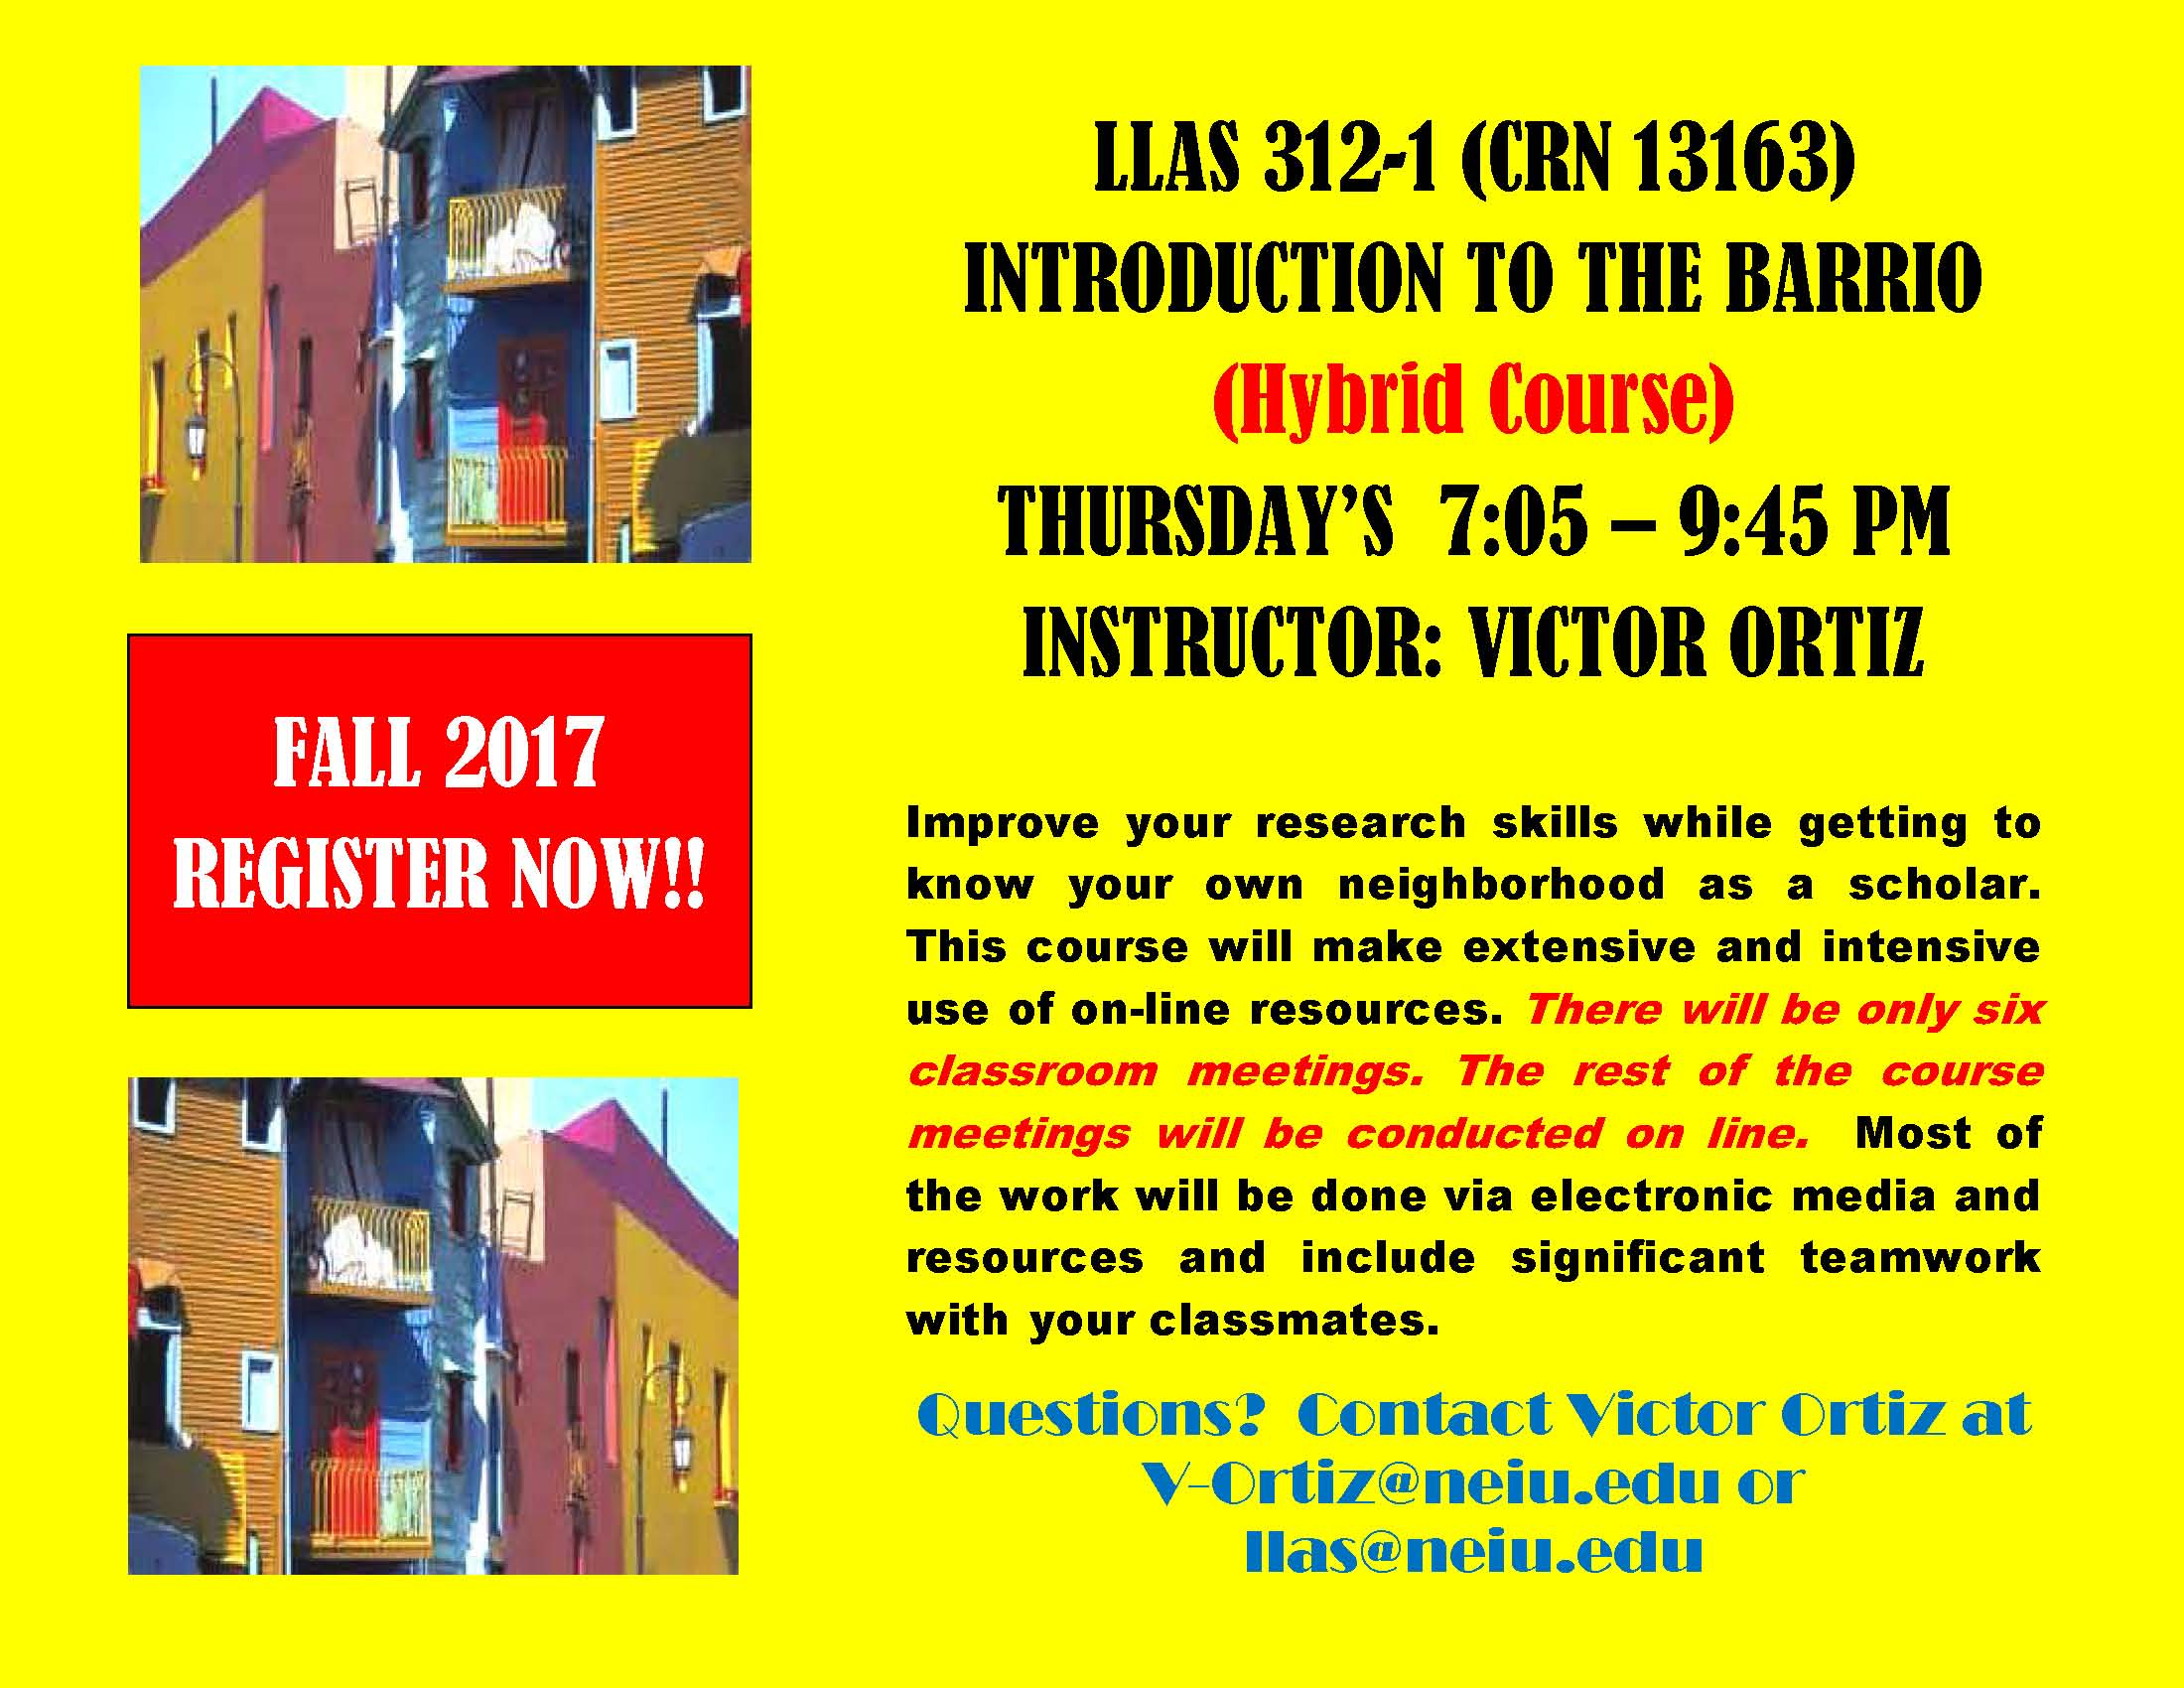 LLAS 312-1 - Introduction to the Barrio